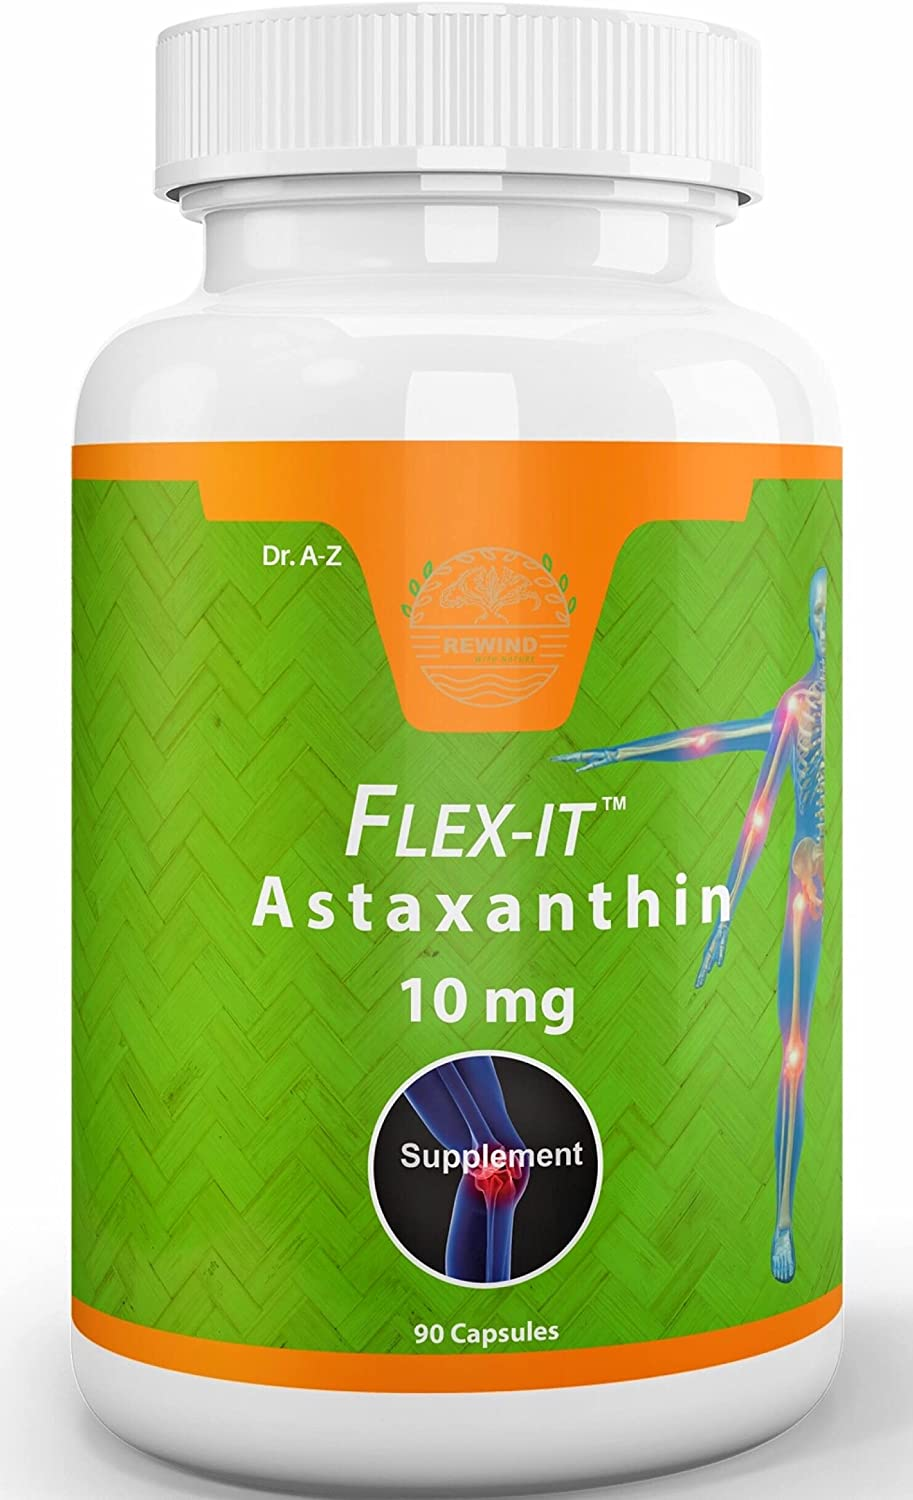 Astaxanthin 10mg Al sold out. Capsules Limited time sale Anti-inflammato Antioxidant Powerful